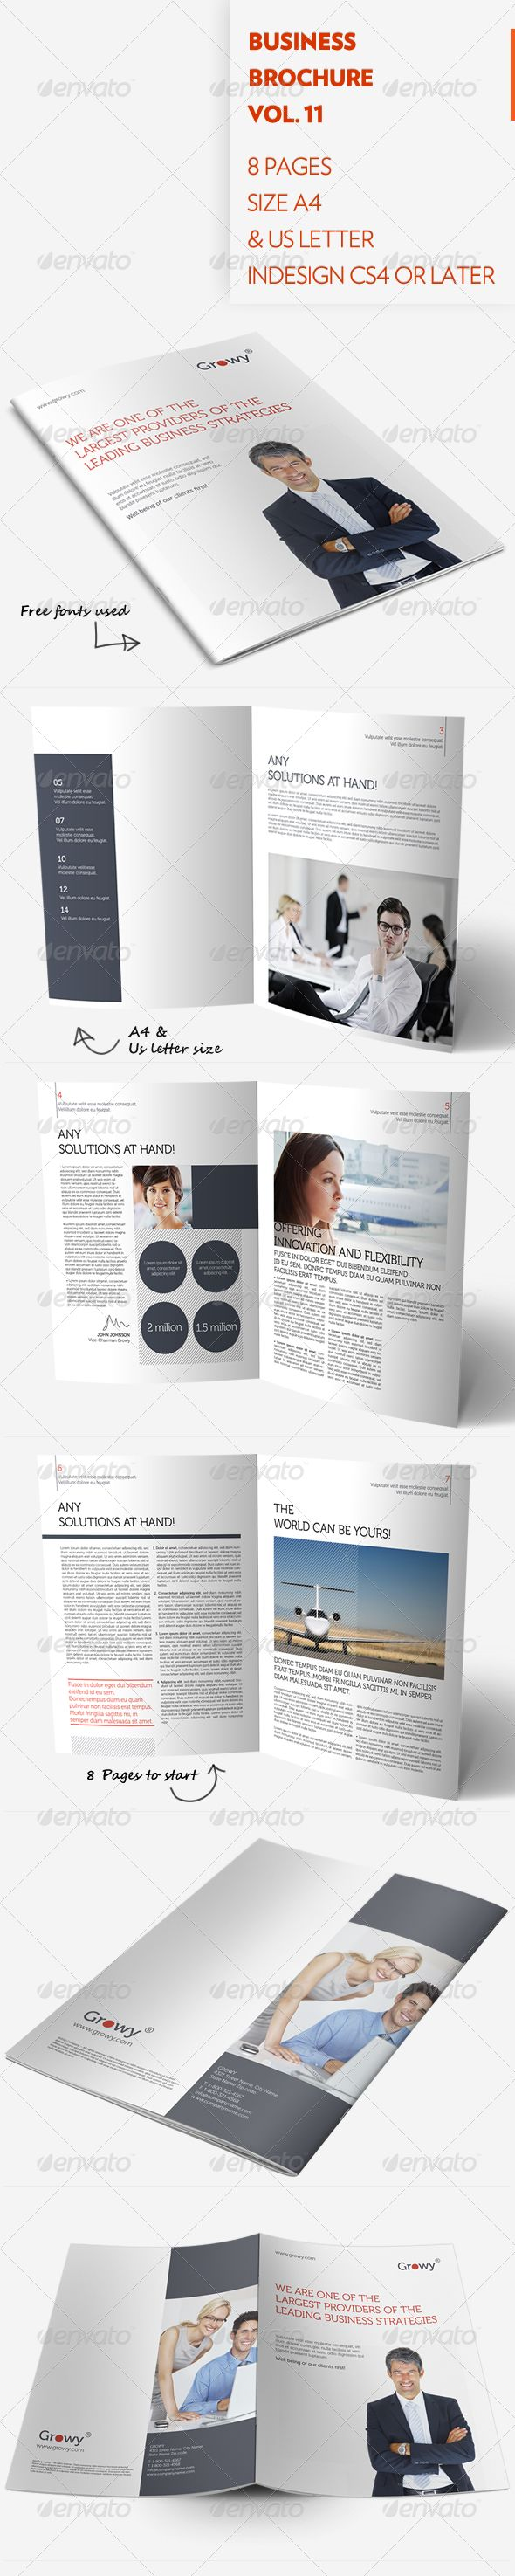 105 best Print Templates images on Pinterest | Print templates ...